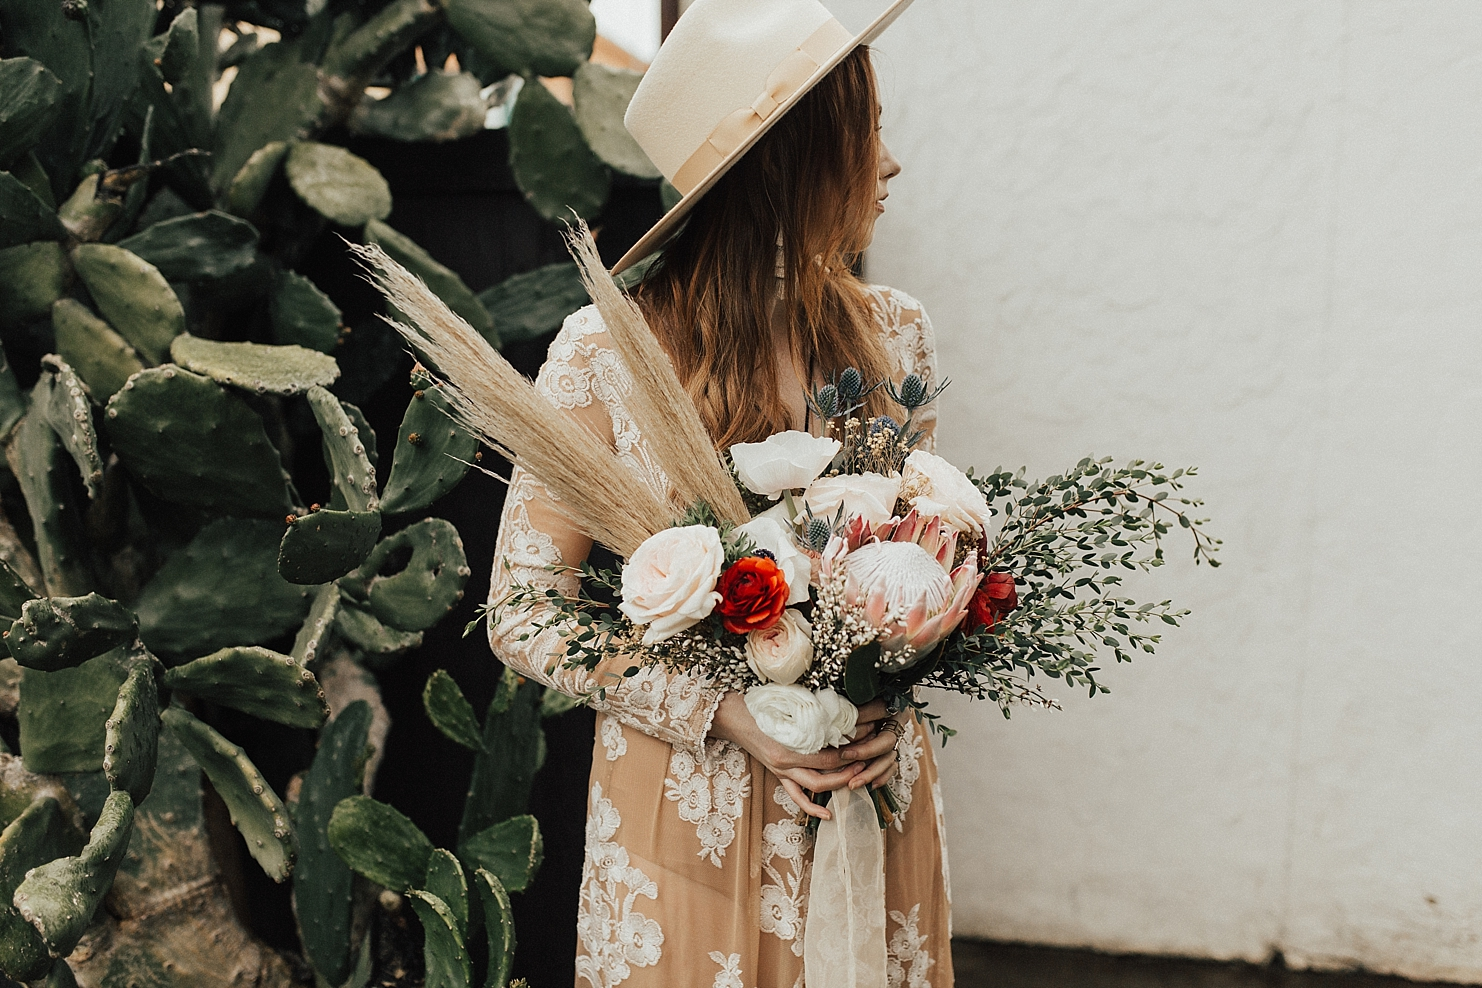 LONG BEACH ELOPEMENT INDIE BRIDE BOHO LOS ANGELES PHOTOGRAPHER RACHEL WAKEFIELD LA ELOPEMENT PHOTOGRAPHER-73.jpg